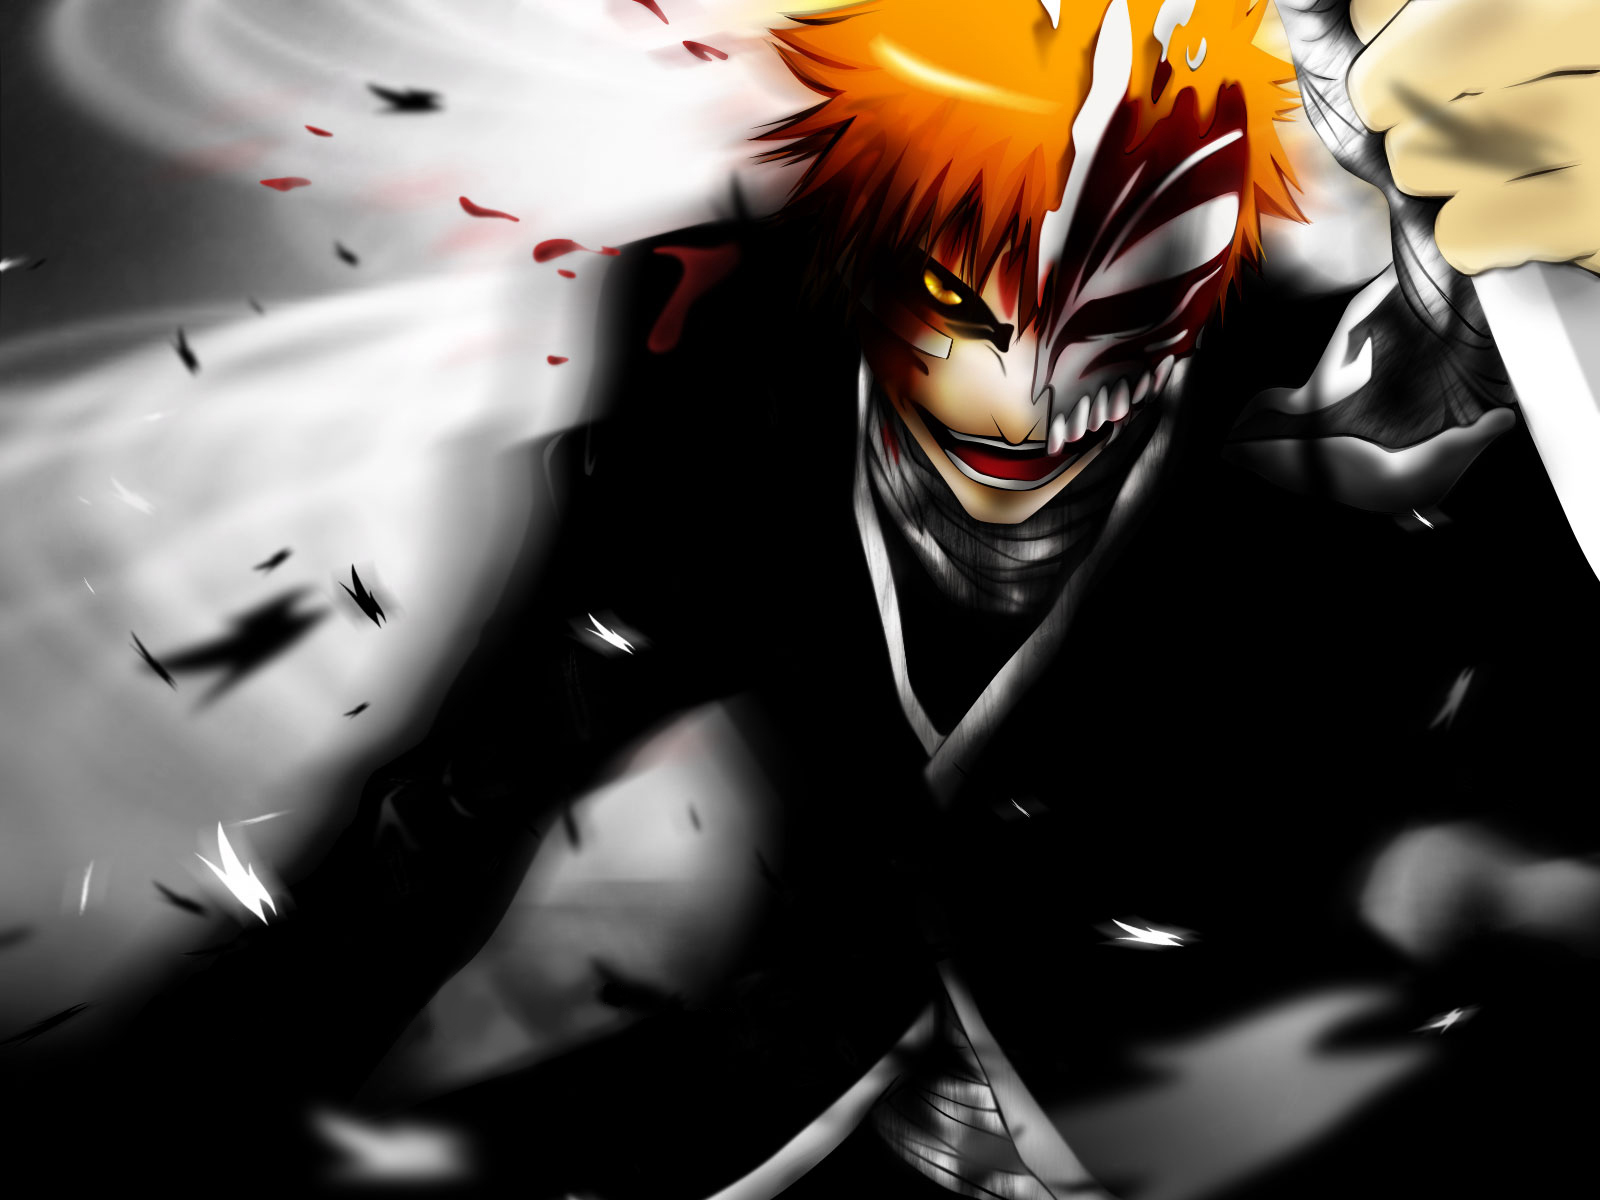 download bleach episode 328 subtitle bahasa indonesia hardsub 75mb mkv